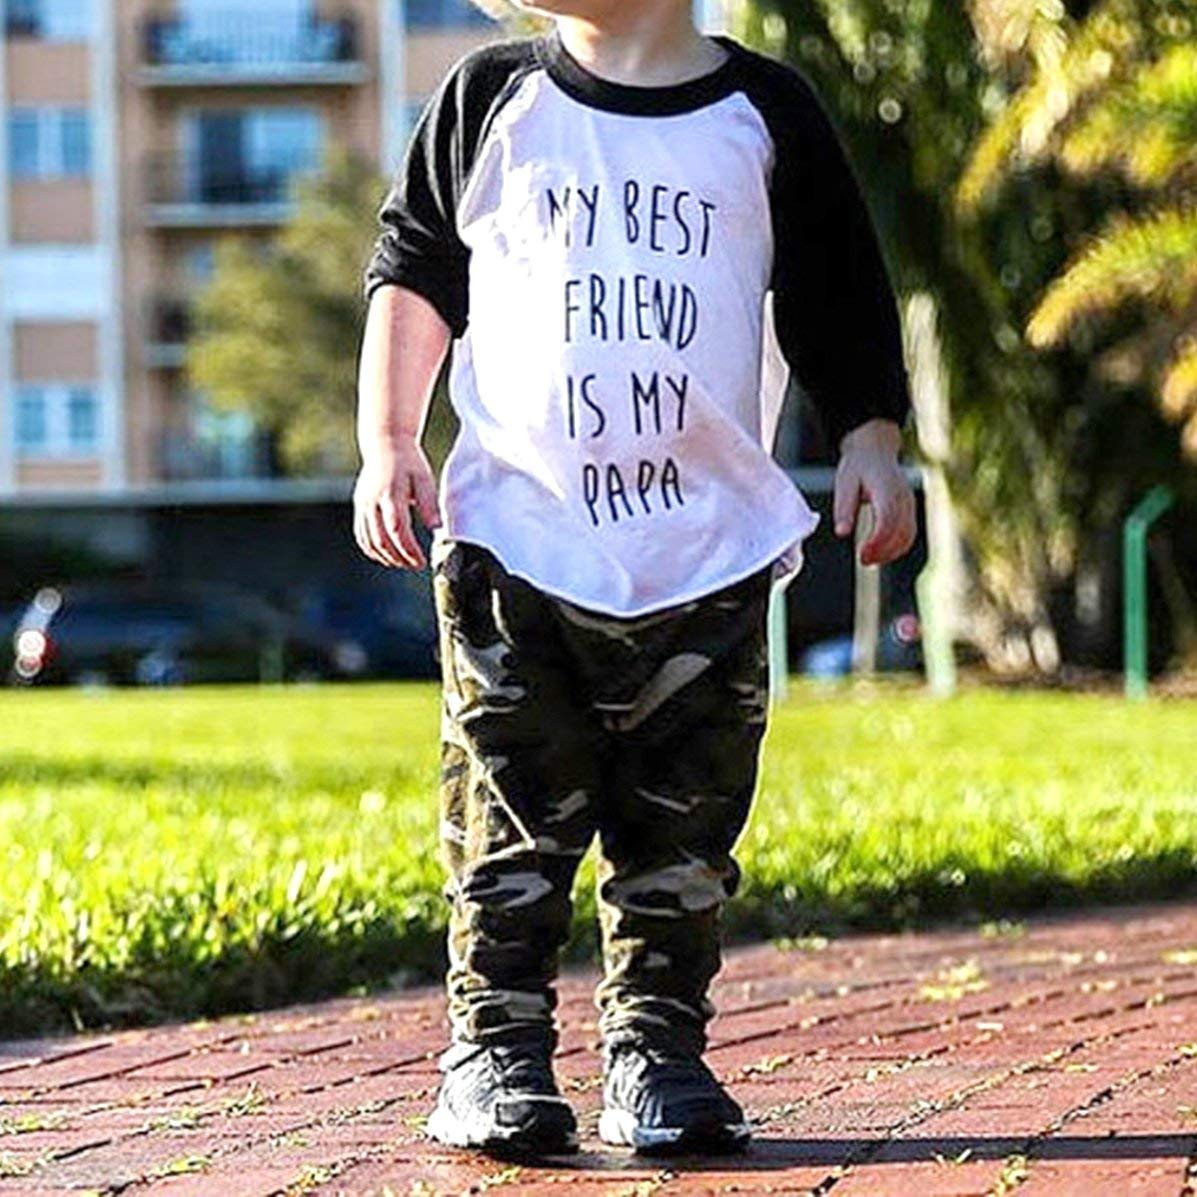 Baby Boys My Best Friend is My Papa Outfit Toddler Tshirt Long Sleeve Tee Shirt Cute Infant Clothes Set Kids Shirts